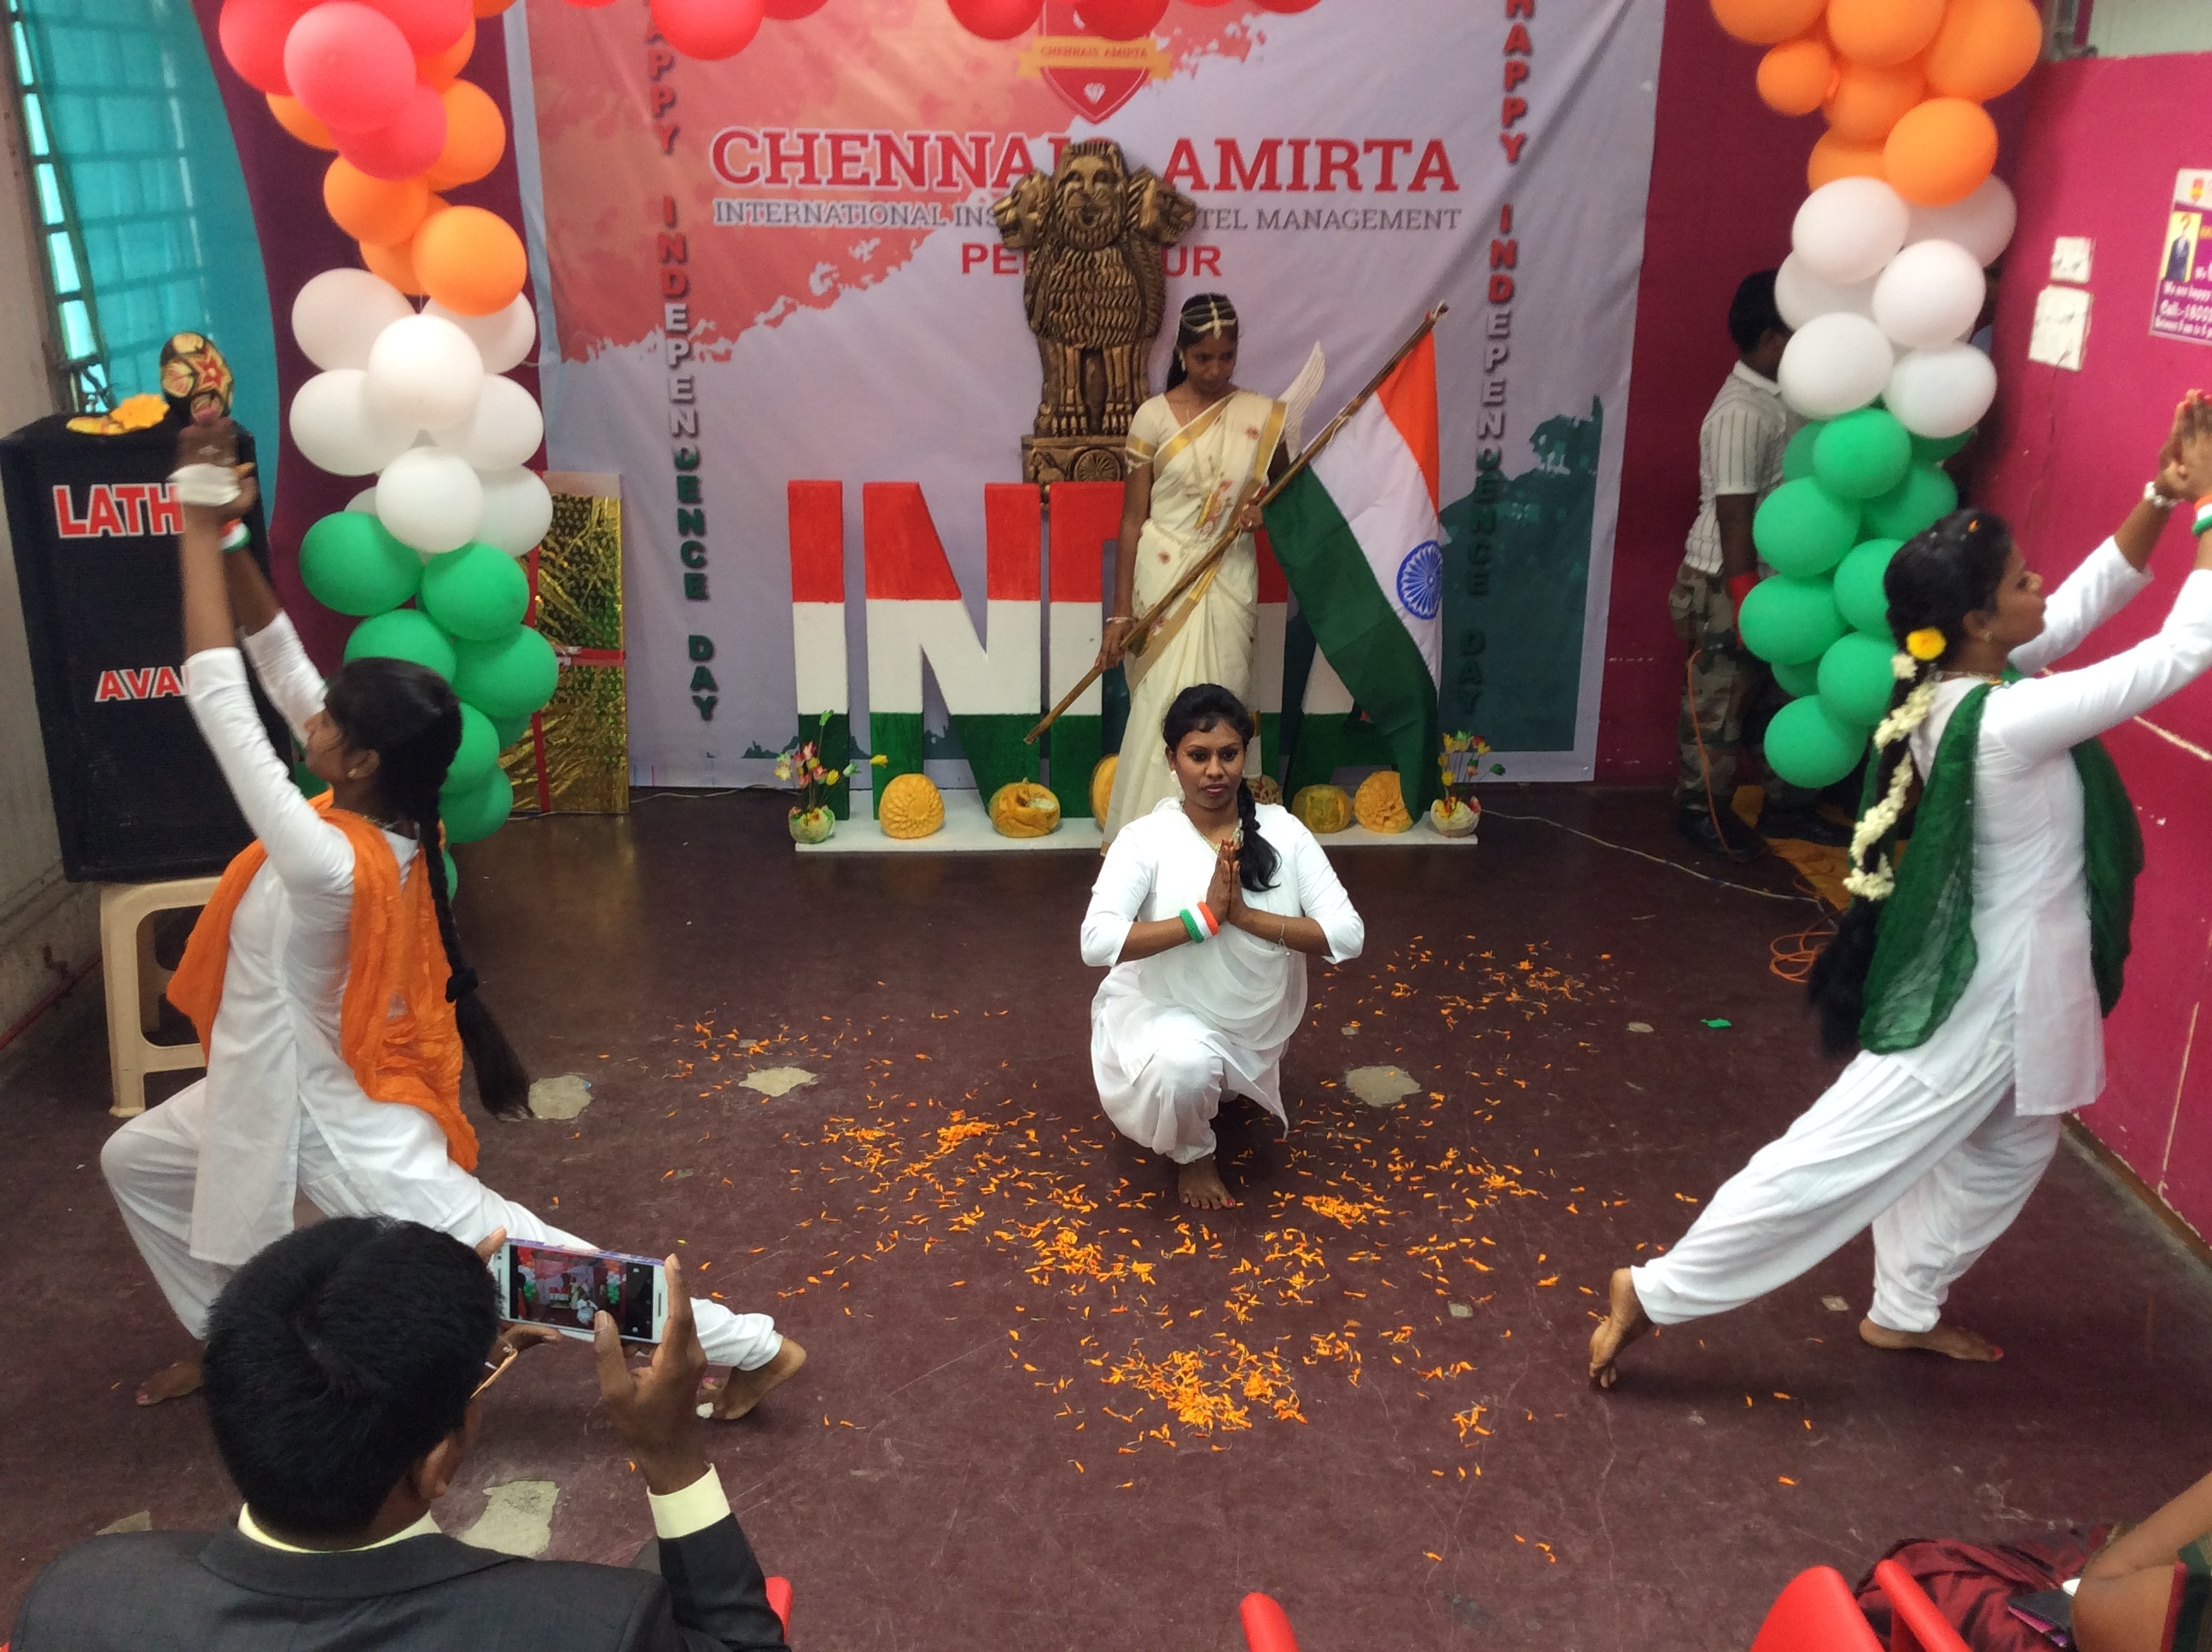 Best Hotel Management College in Tamilnadu   The Independence Day celebration was celebrated by the Chennais Amirta's Perambur branch students and staff on 15th August 2016. All the students and staff members gather round to celebrate Independence Day. The flag hoisting ceremony takes place followed by the National Anthem. After this various cultural activities like folk dances, skits and dramas are held in the Chennais Amirta International Institute of Hotel Management.